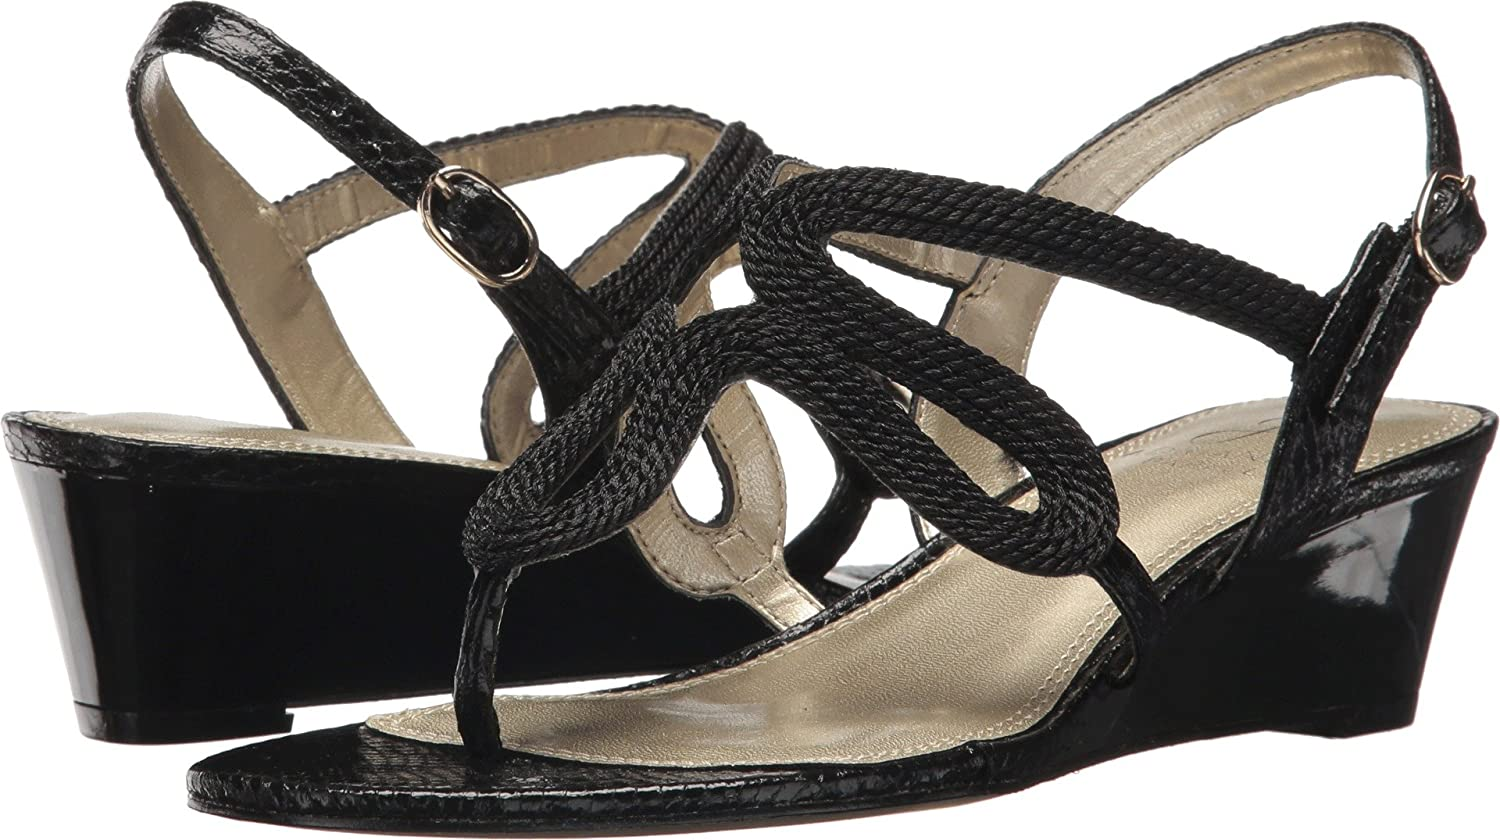 Adrianna Papell Women's Cannes Black Rope 8 M US